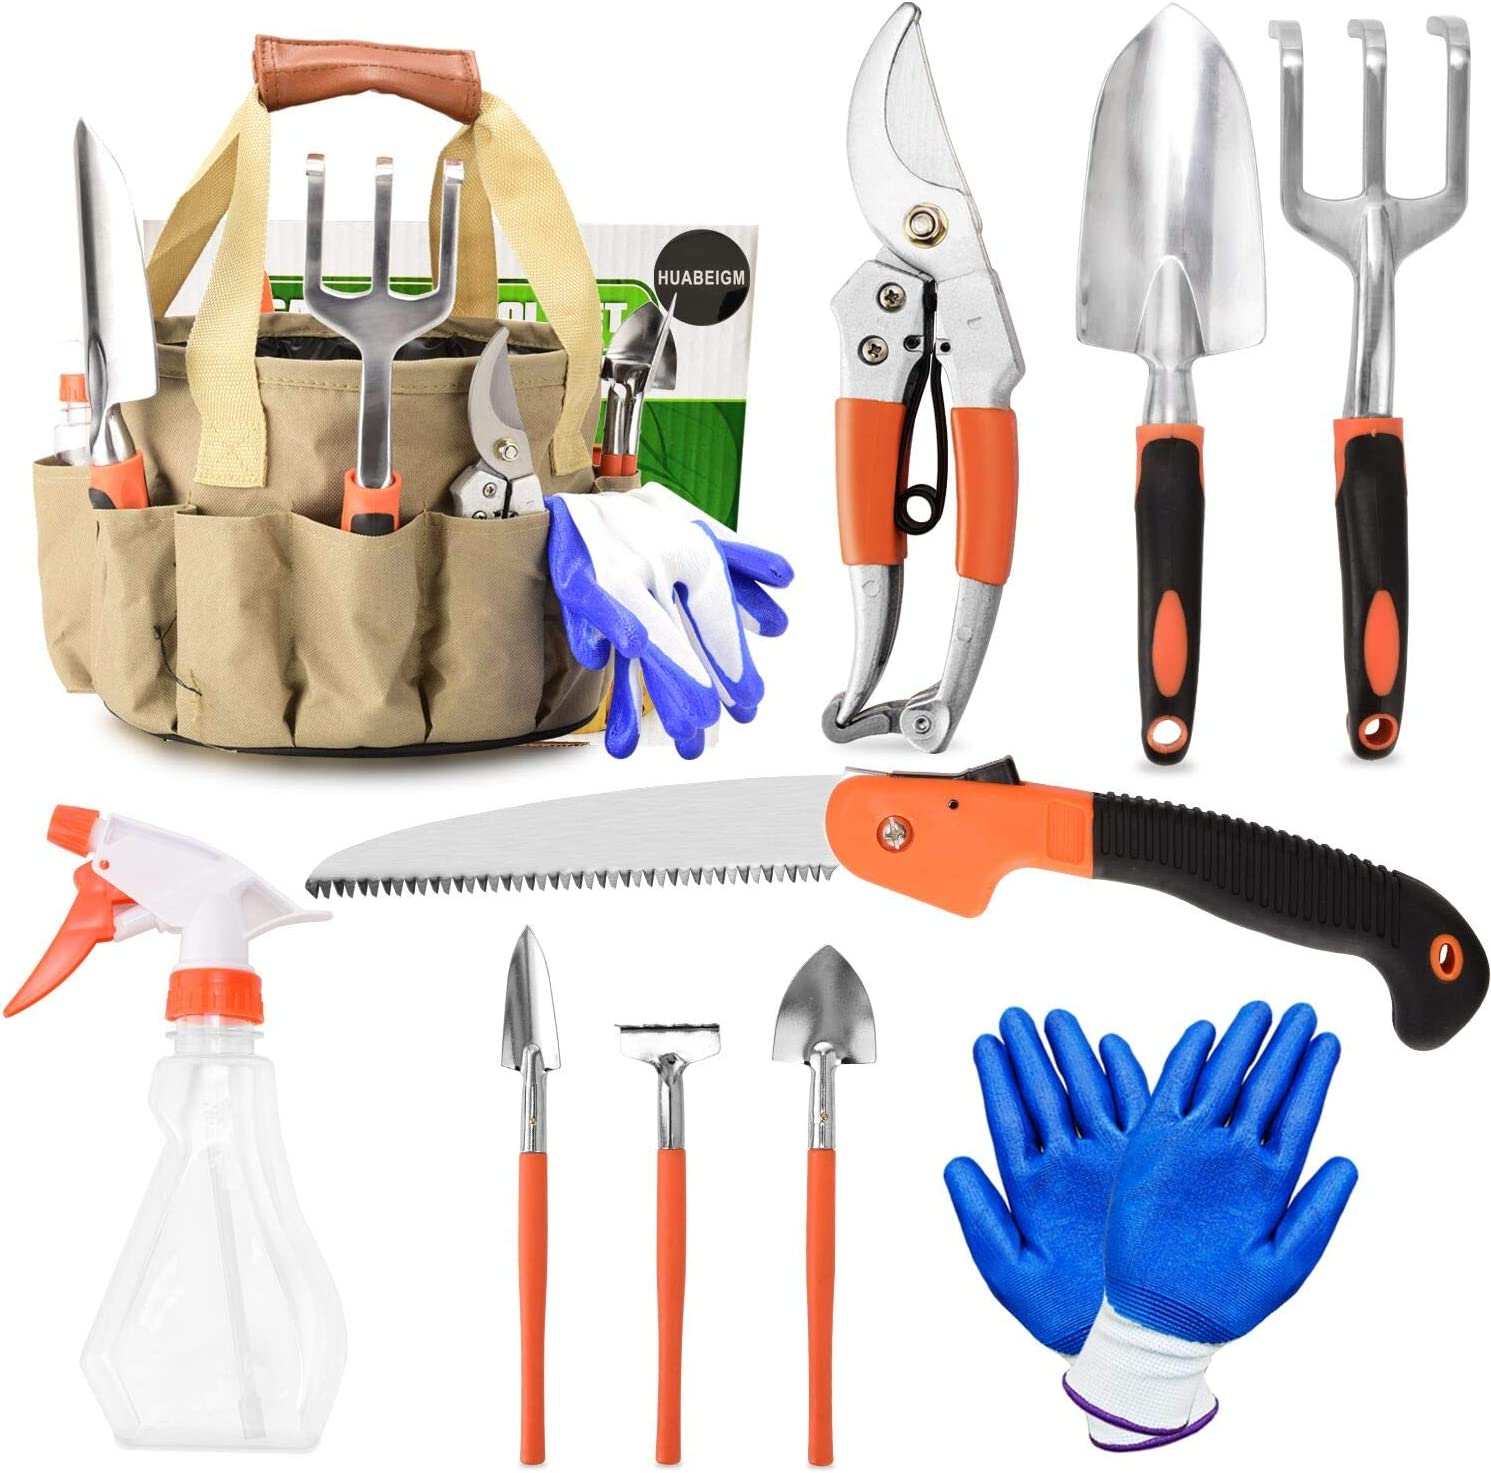 HUABEIGM 10 Piece Garden Tools Set, Aluminum Heavy Duty Gardening, Gardening Gifts for Women with Soft Rubberized Non-Slip Handle, Contain Water Storage Tool Storage Bag (10Piece)